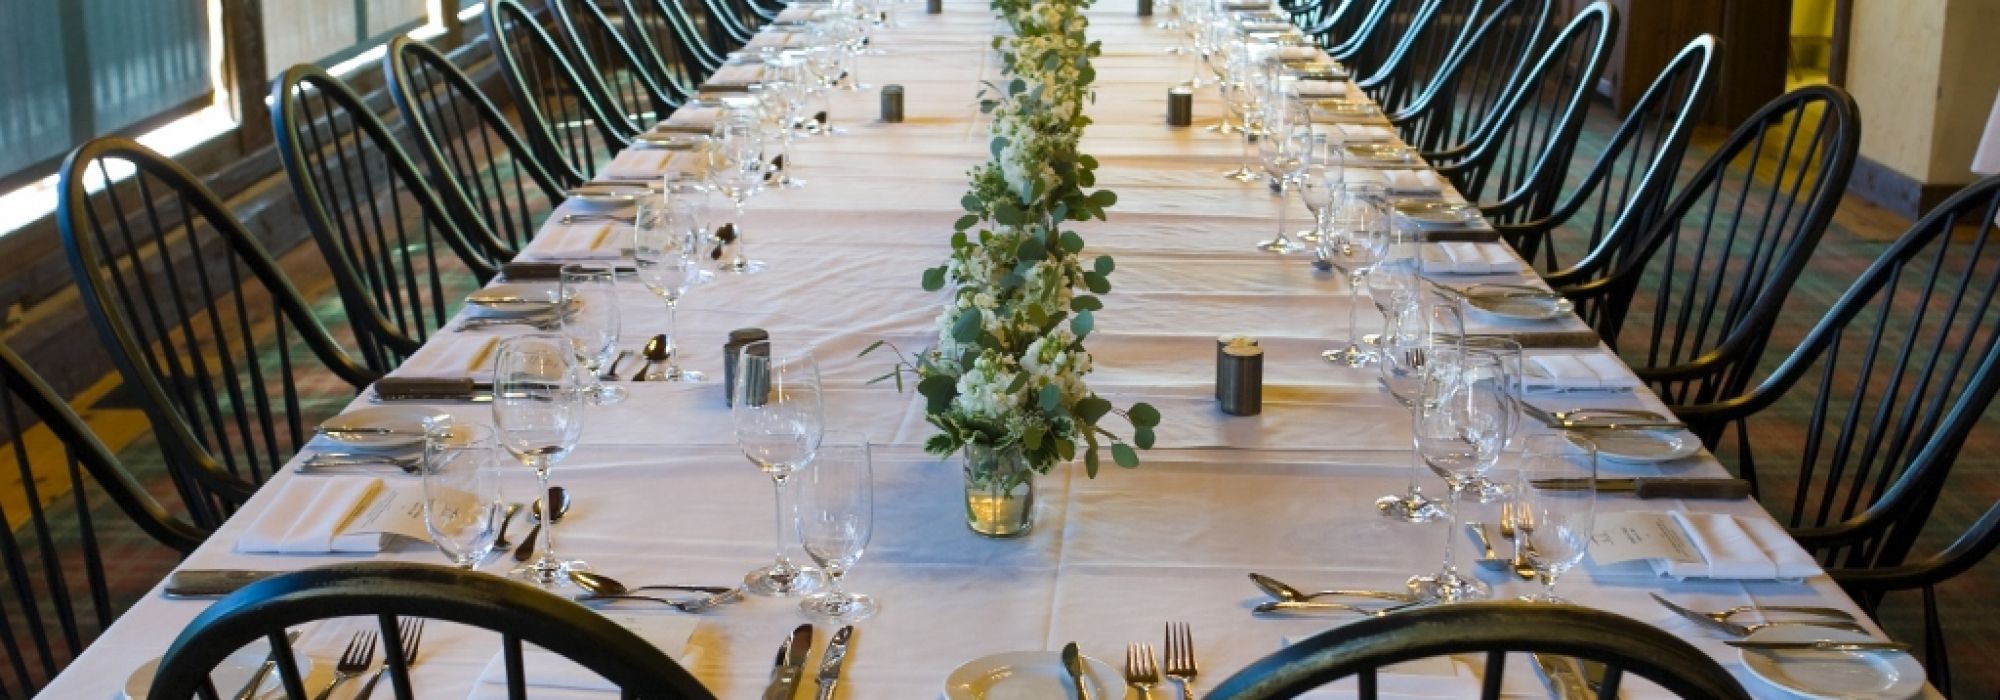 Fine Dining private toronto catering